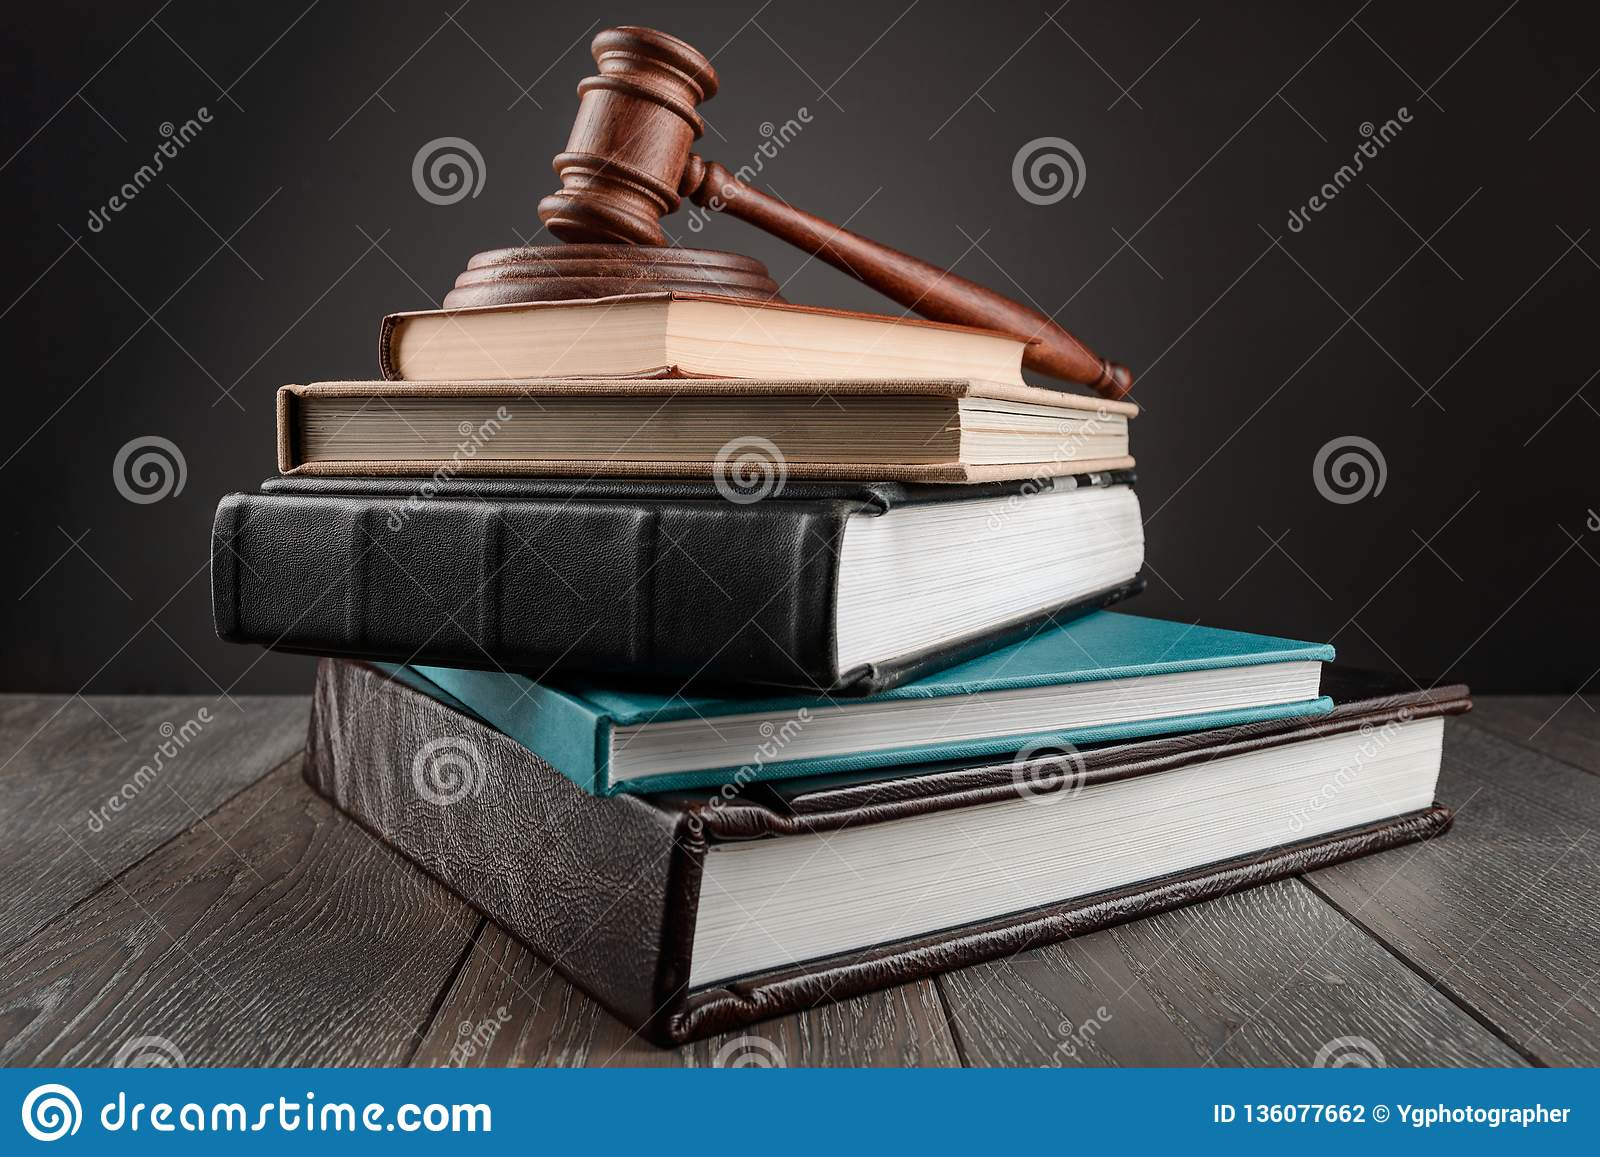 Gavel on top of books stock photo  Image of justice - 136077662